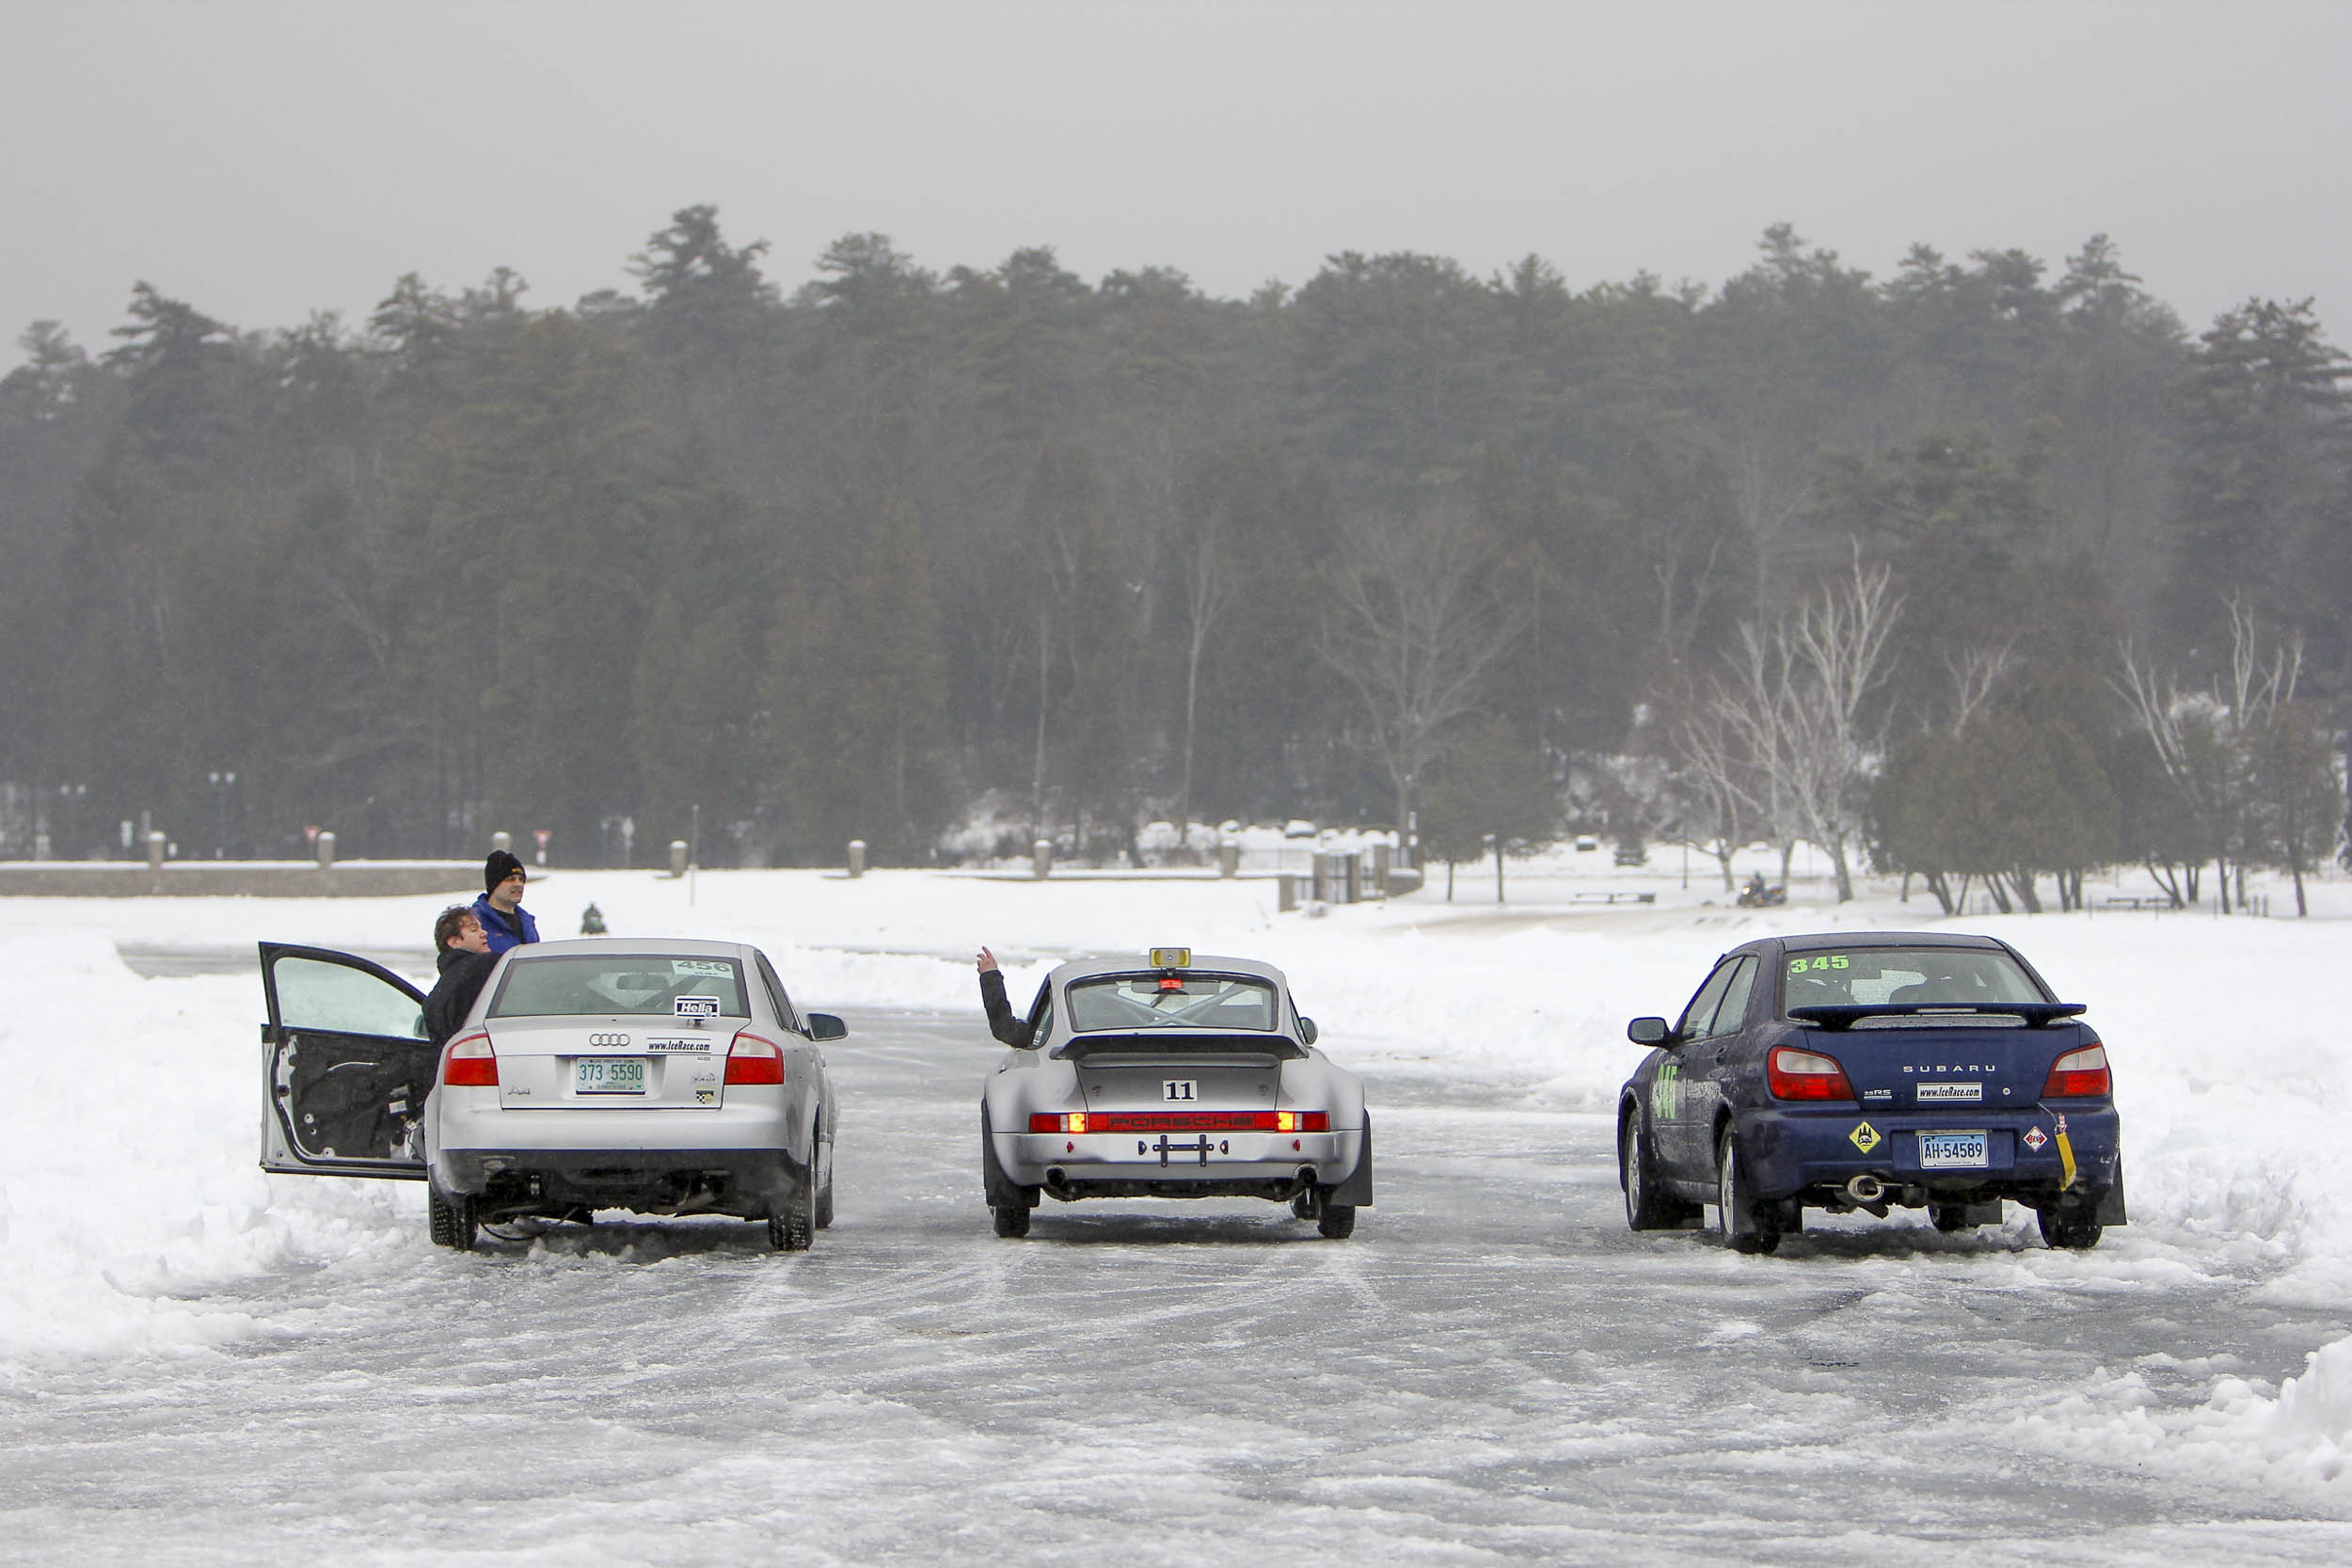 Subaru, Audi and Porsche ice racers